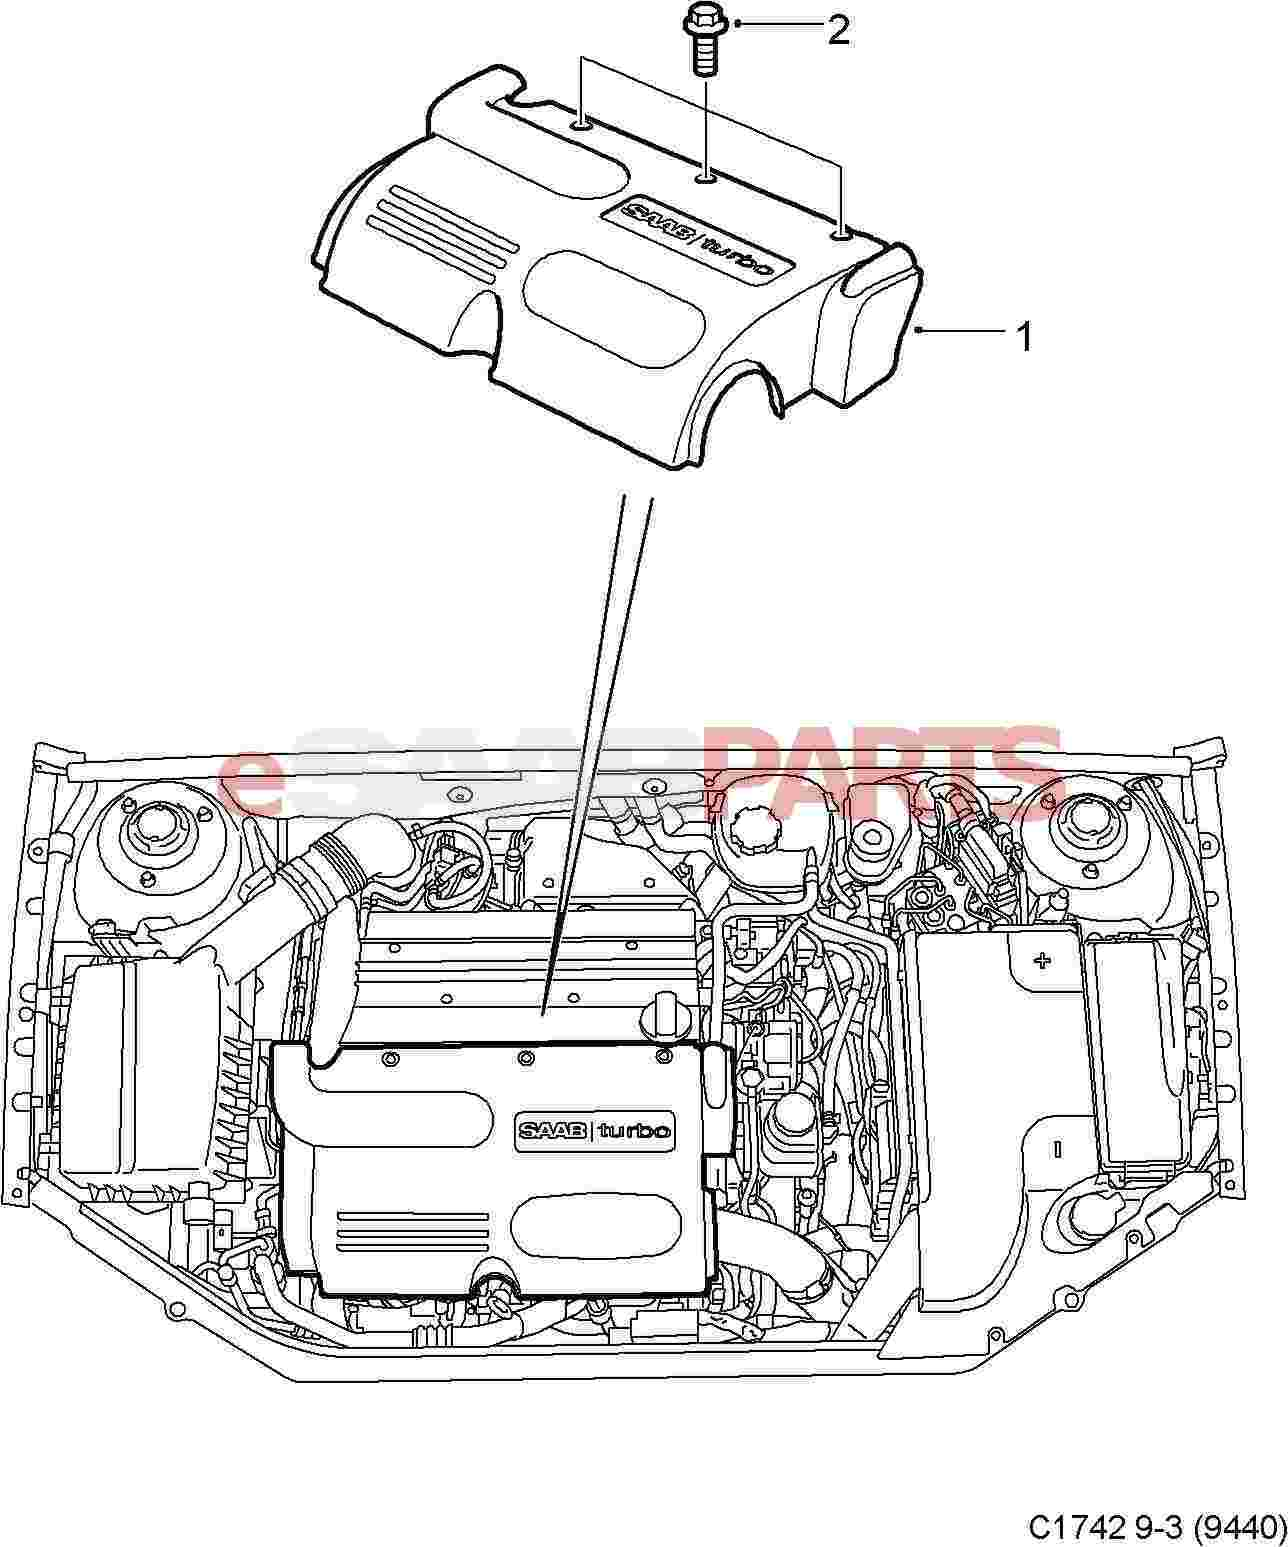 1999 saab 9 3 wiring diagram liver pain location engine bay and